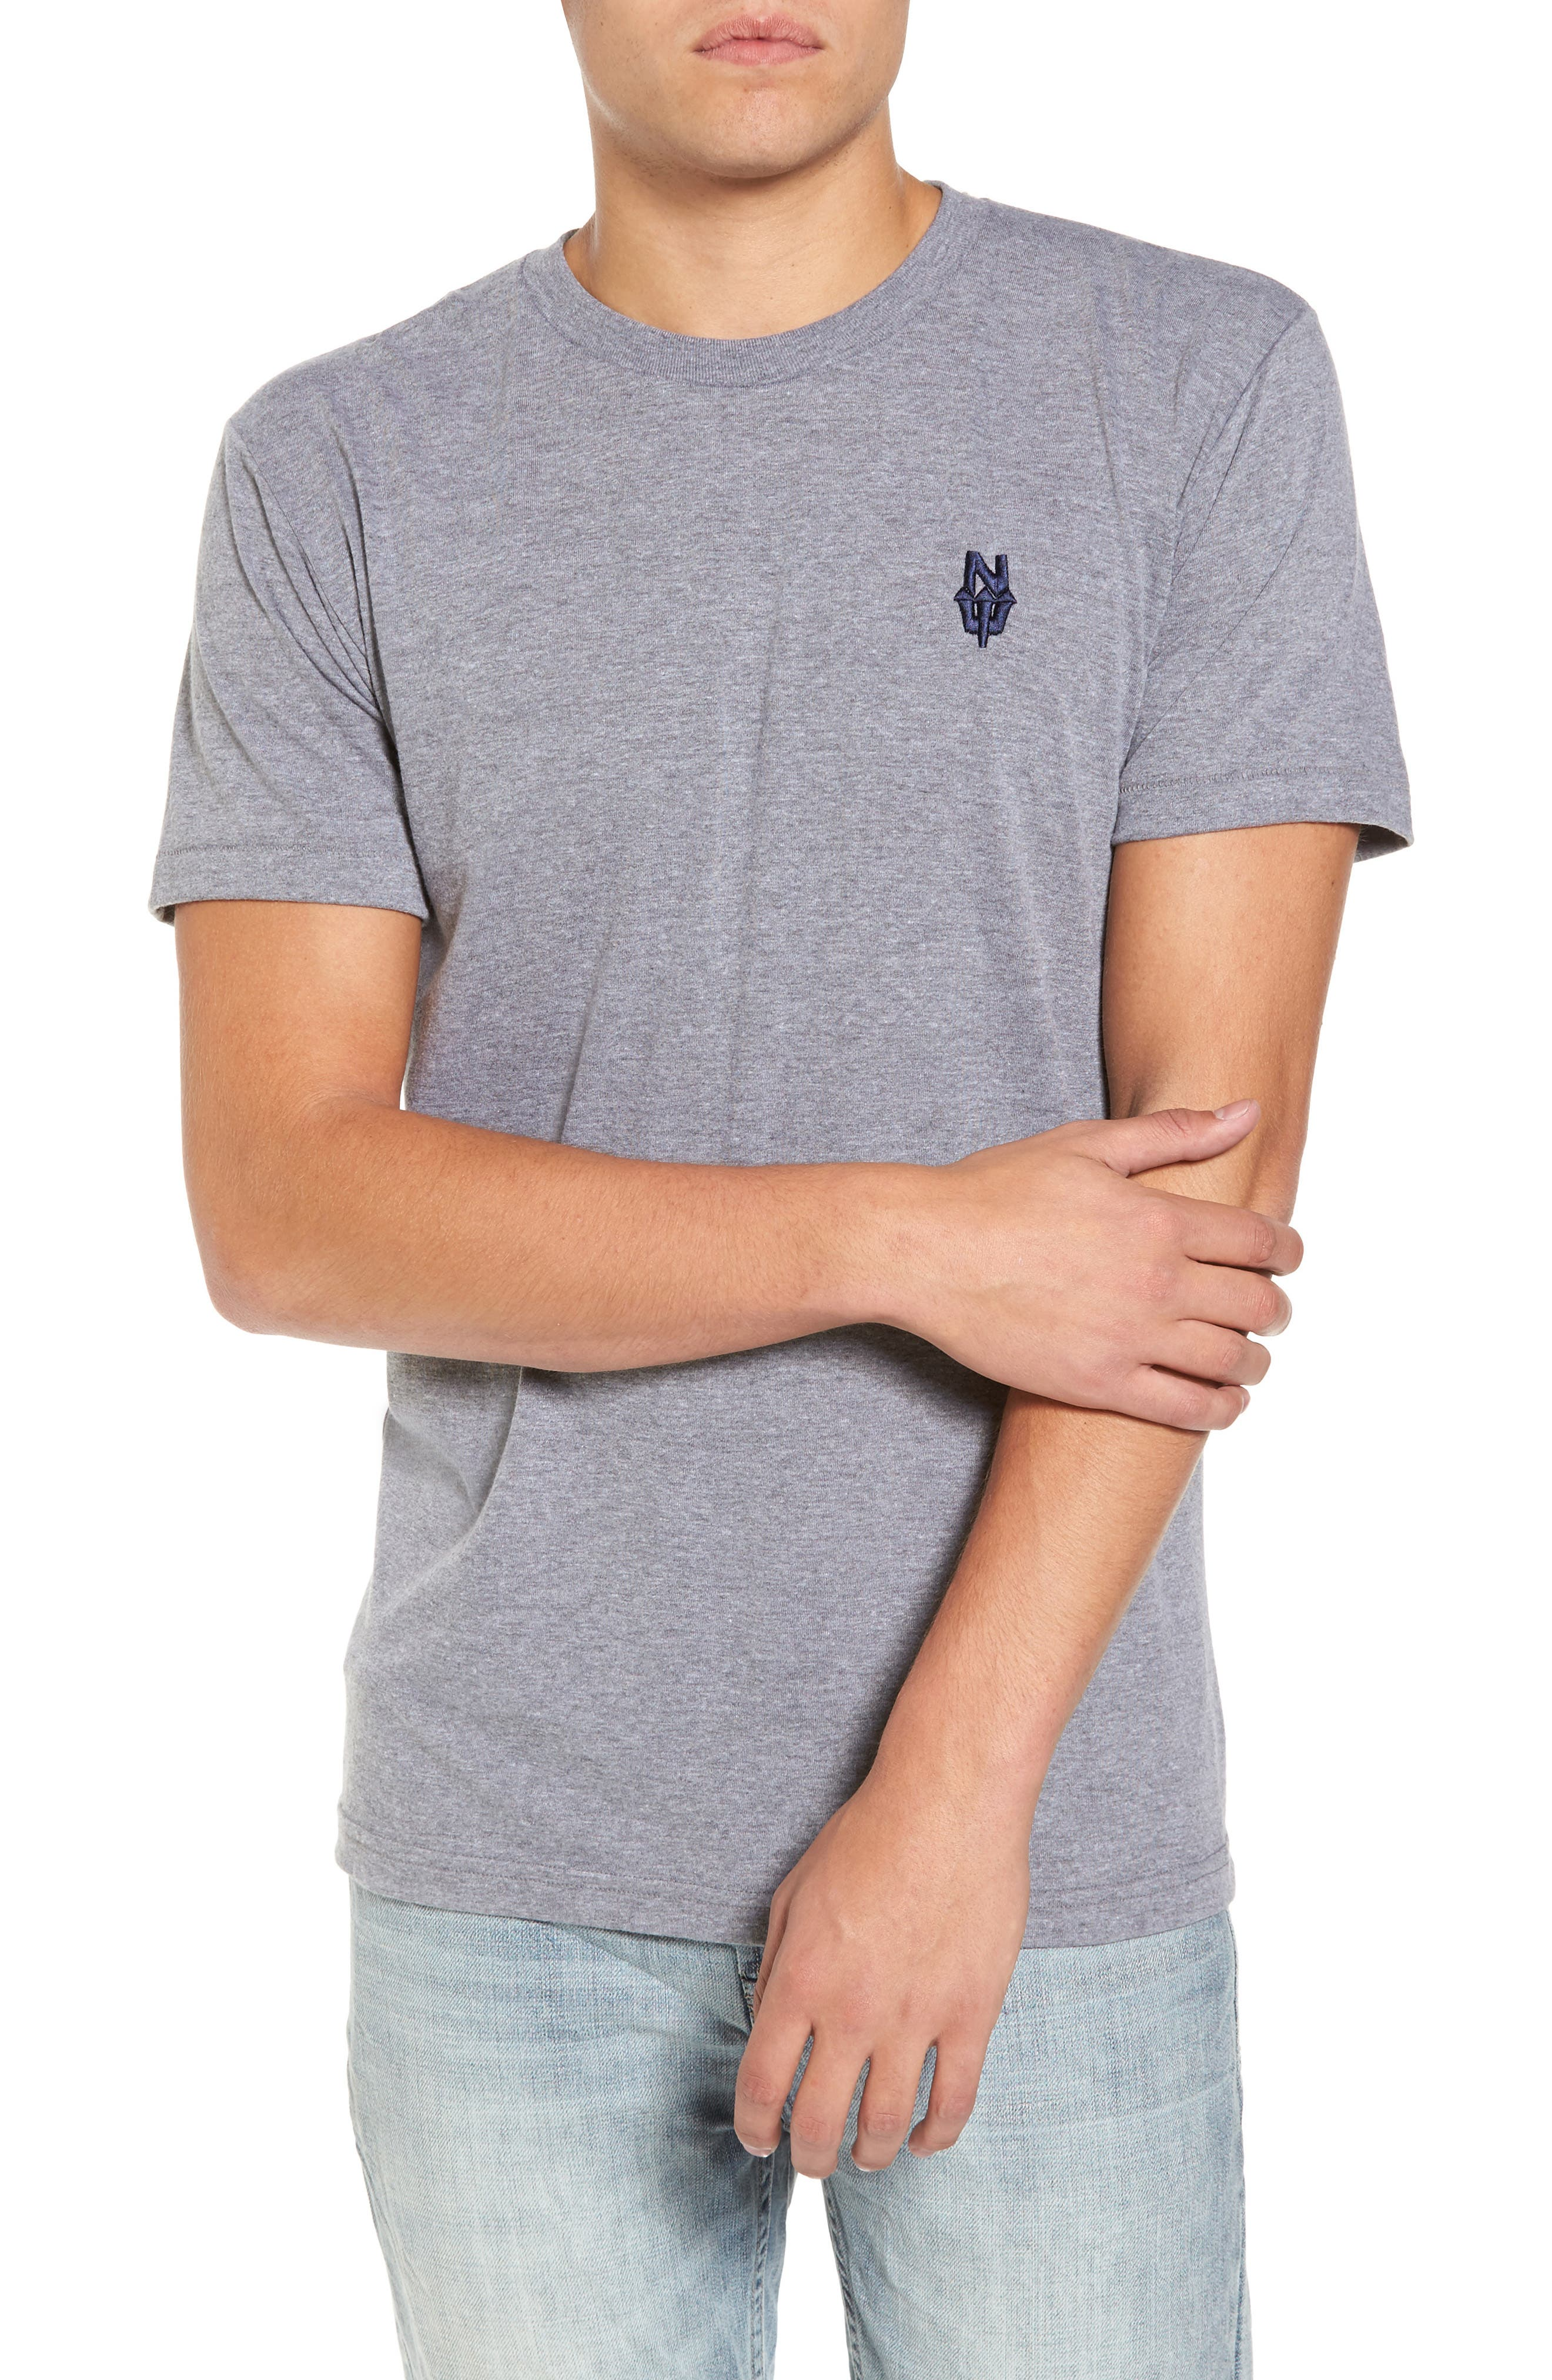 NW Trident Embroidered T-Shirt,                             Main thumbnail 2, color,